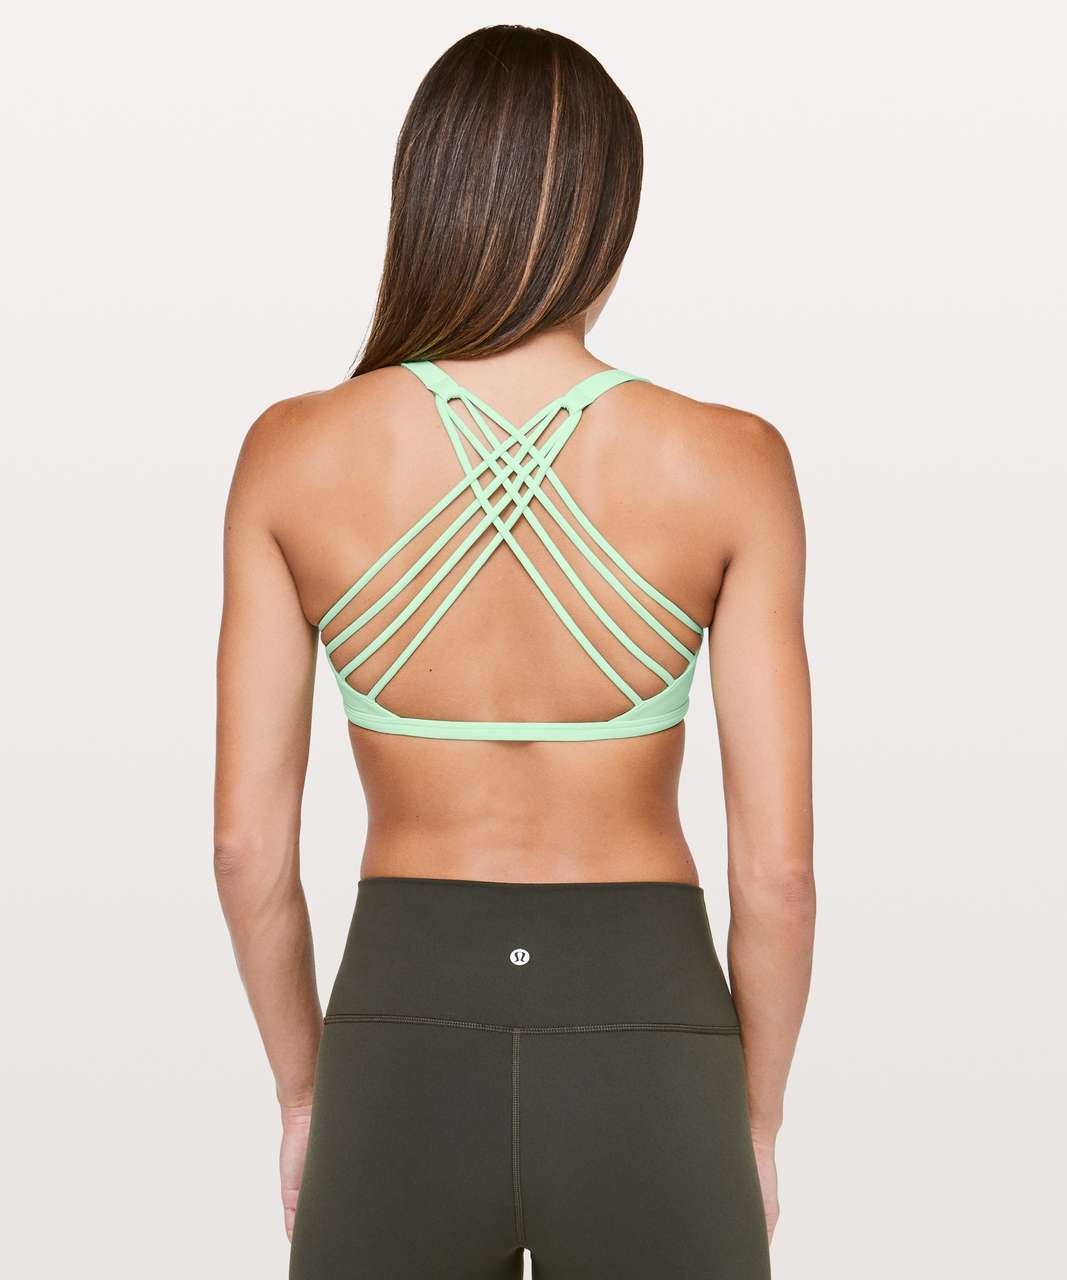 Lululemon Free To Be Bra (Wild) - Citra Lime